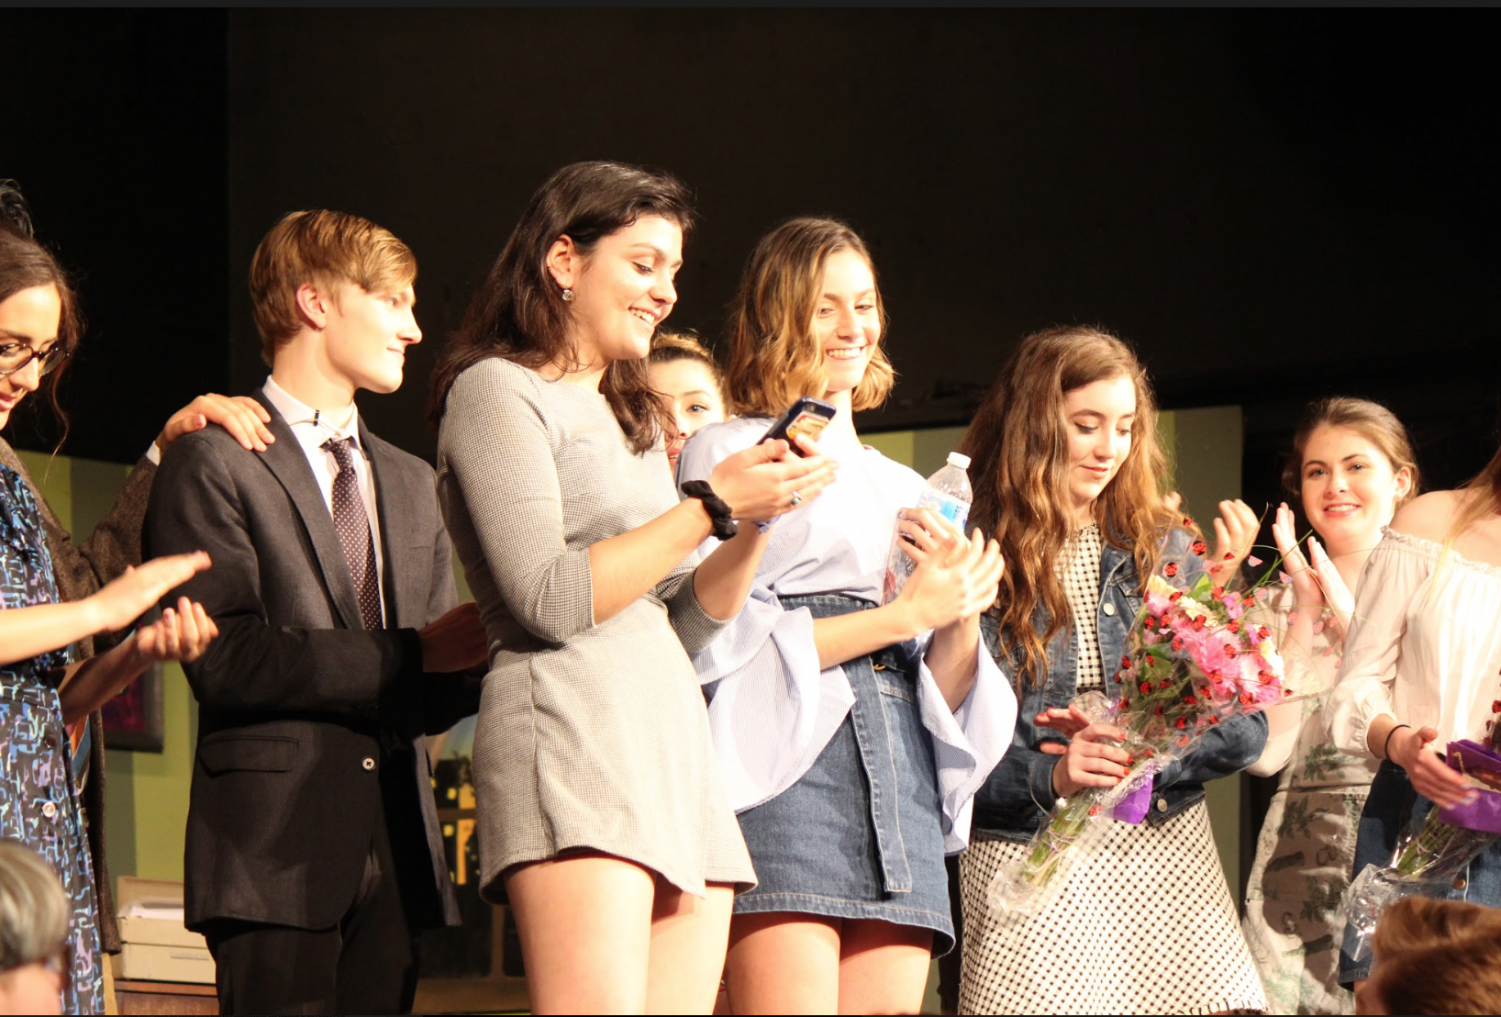 Seniors Lara Graney of Belmar, Drama Club director, and Izzy Cavazzoni of Wall, Drama Club producer, thank the audience for attending